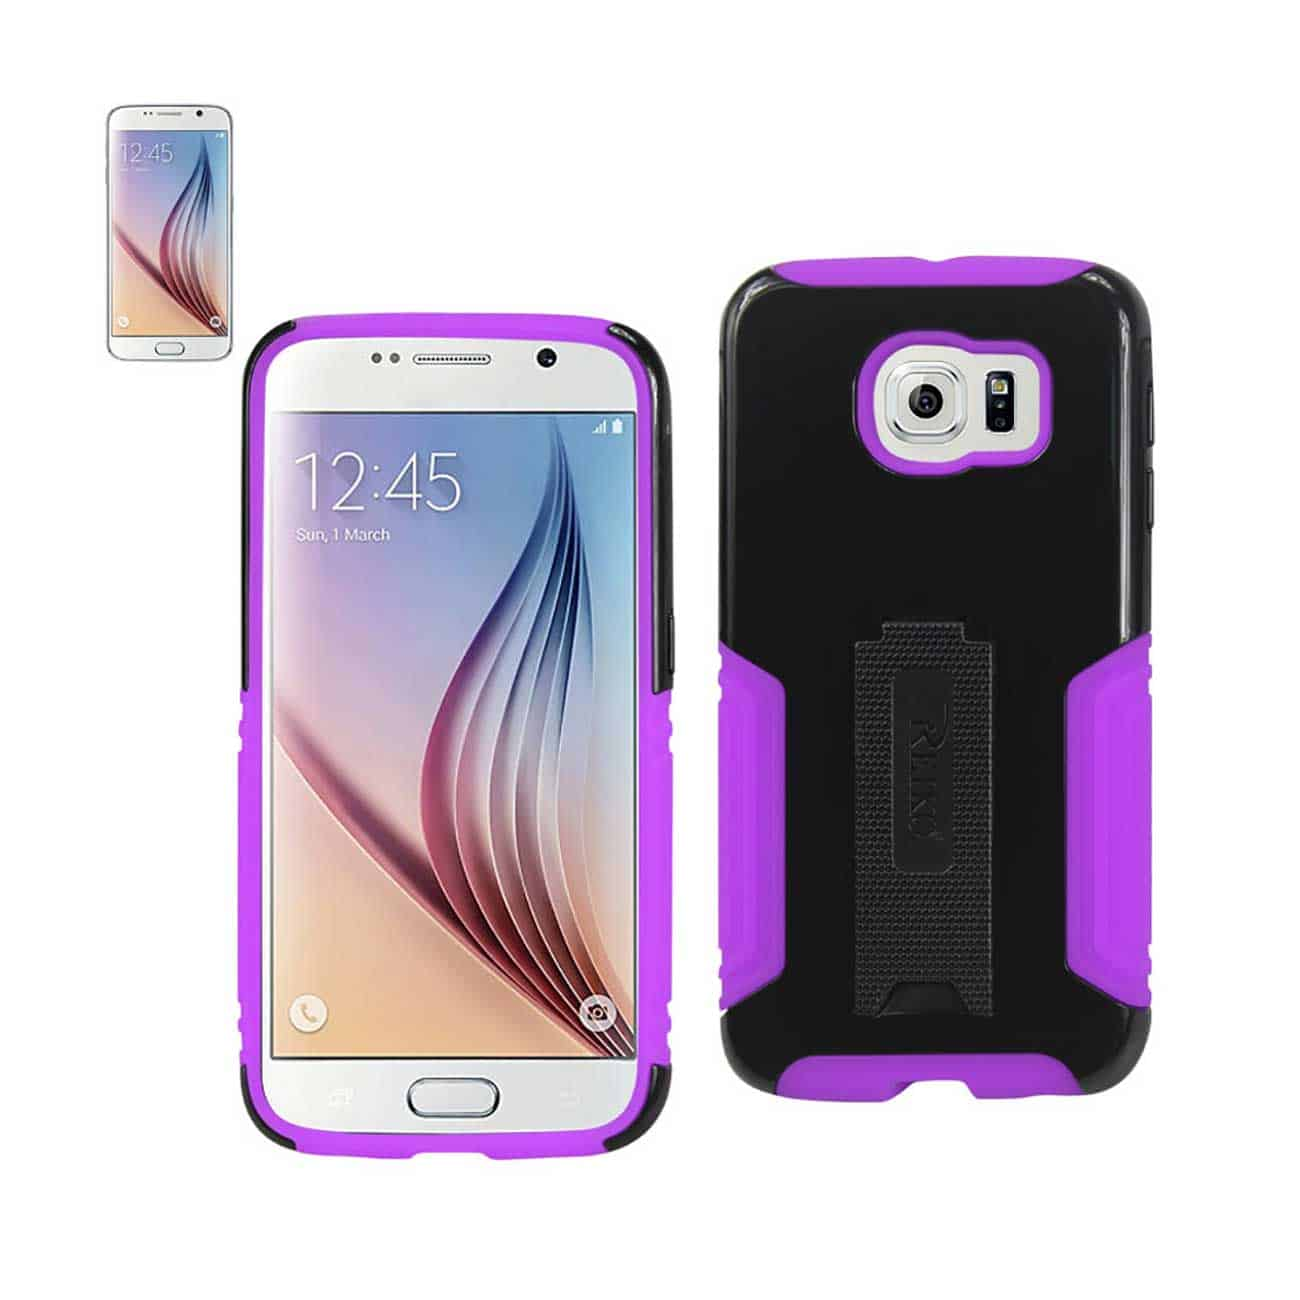 SAMSUNG GALAXY S6 HYBRID HEAVY DUTY CASE WITH LOWER KICKSTAND IN PURPLE BLACK